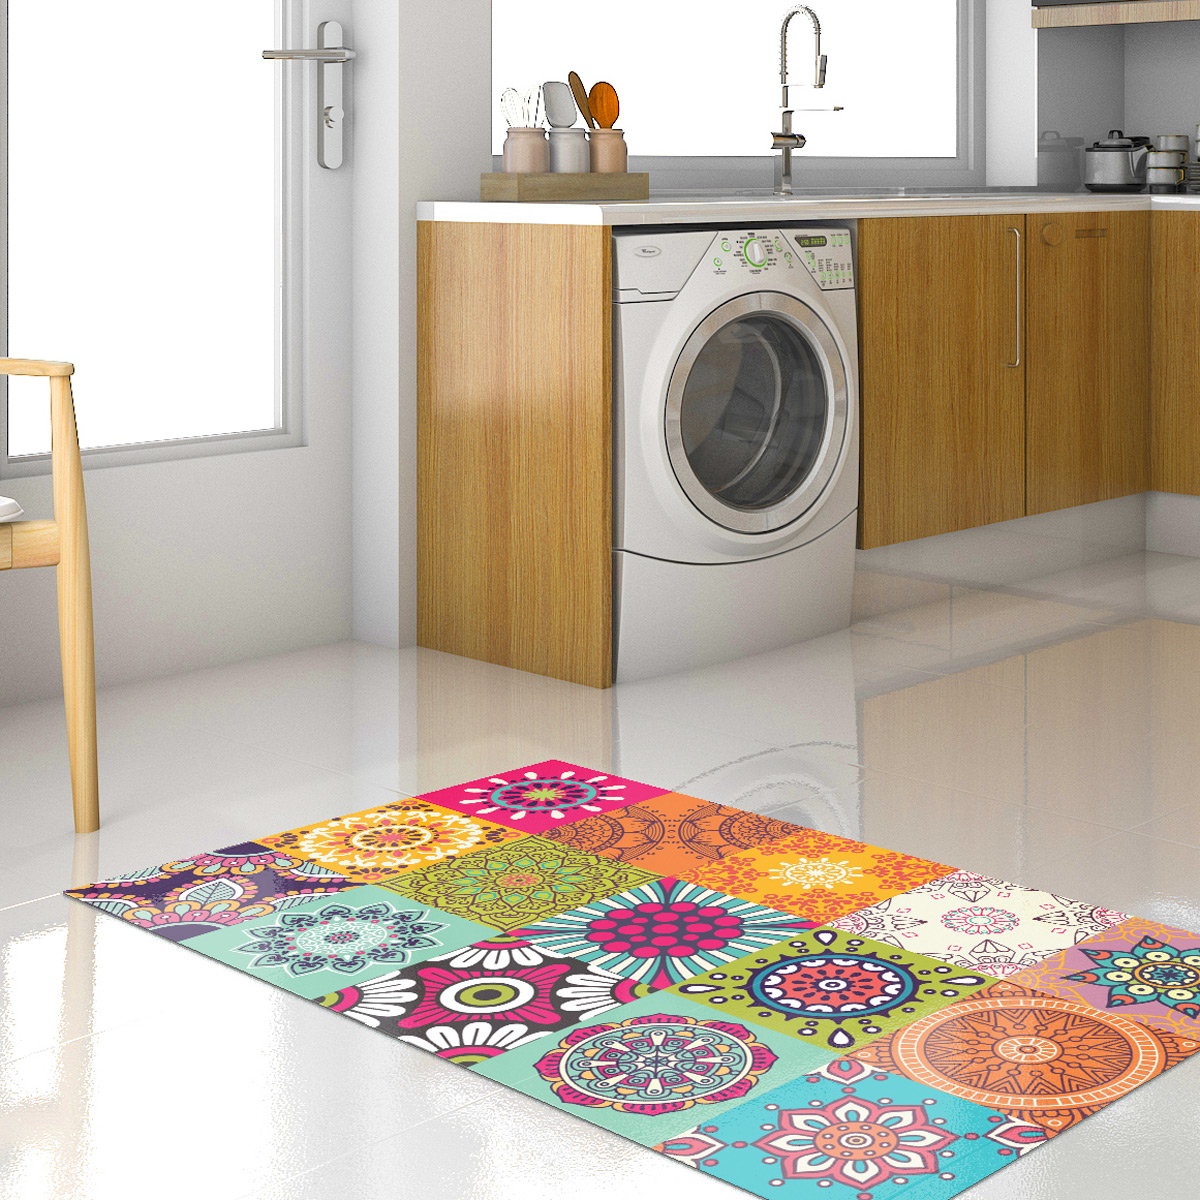 tapis vinyle carrelages azteka 60 x 100 cm stickers. Black Bedroom Furniture Sets. Home Design Ideas